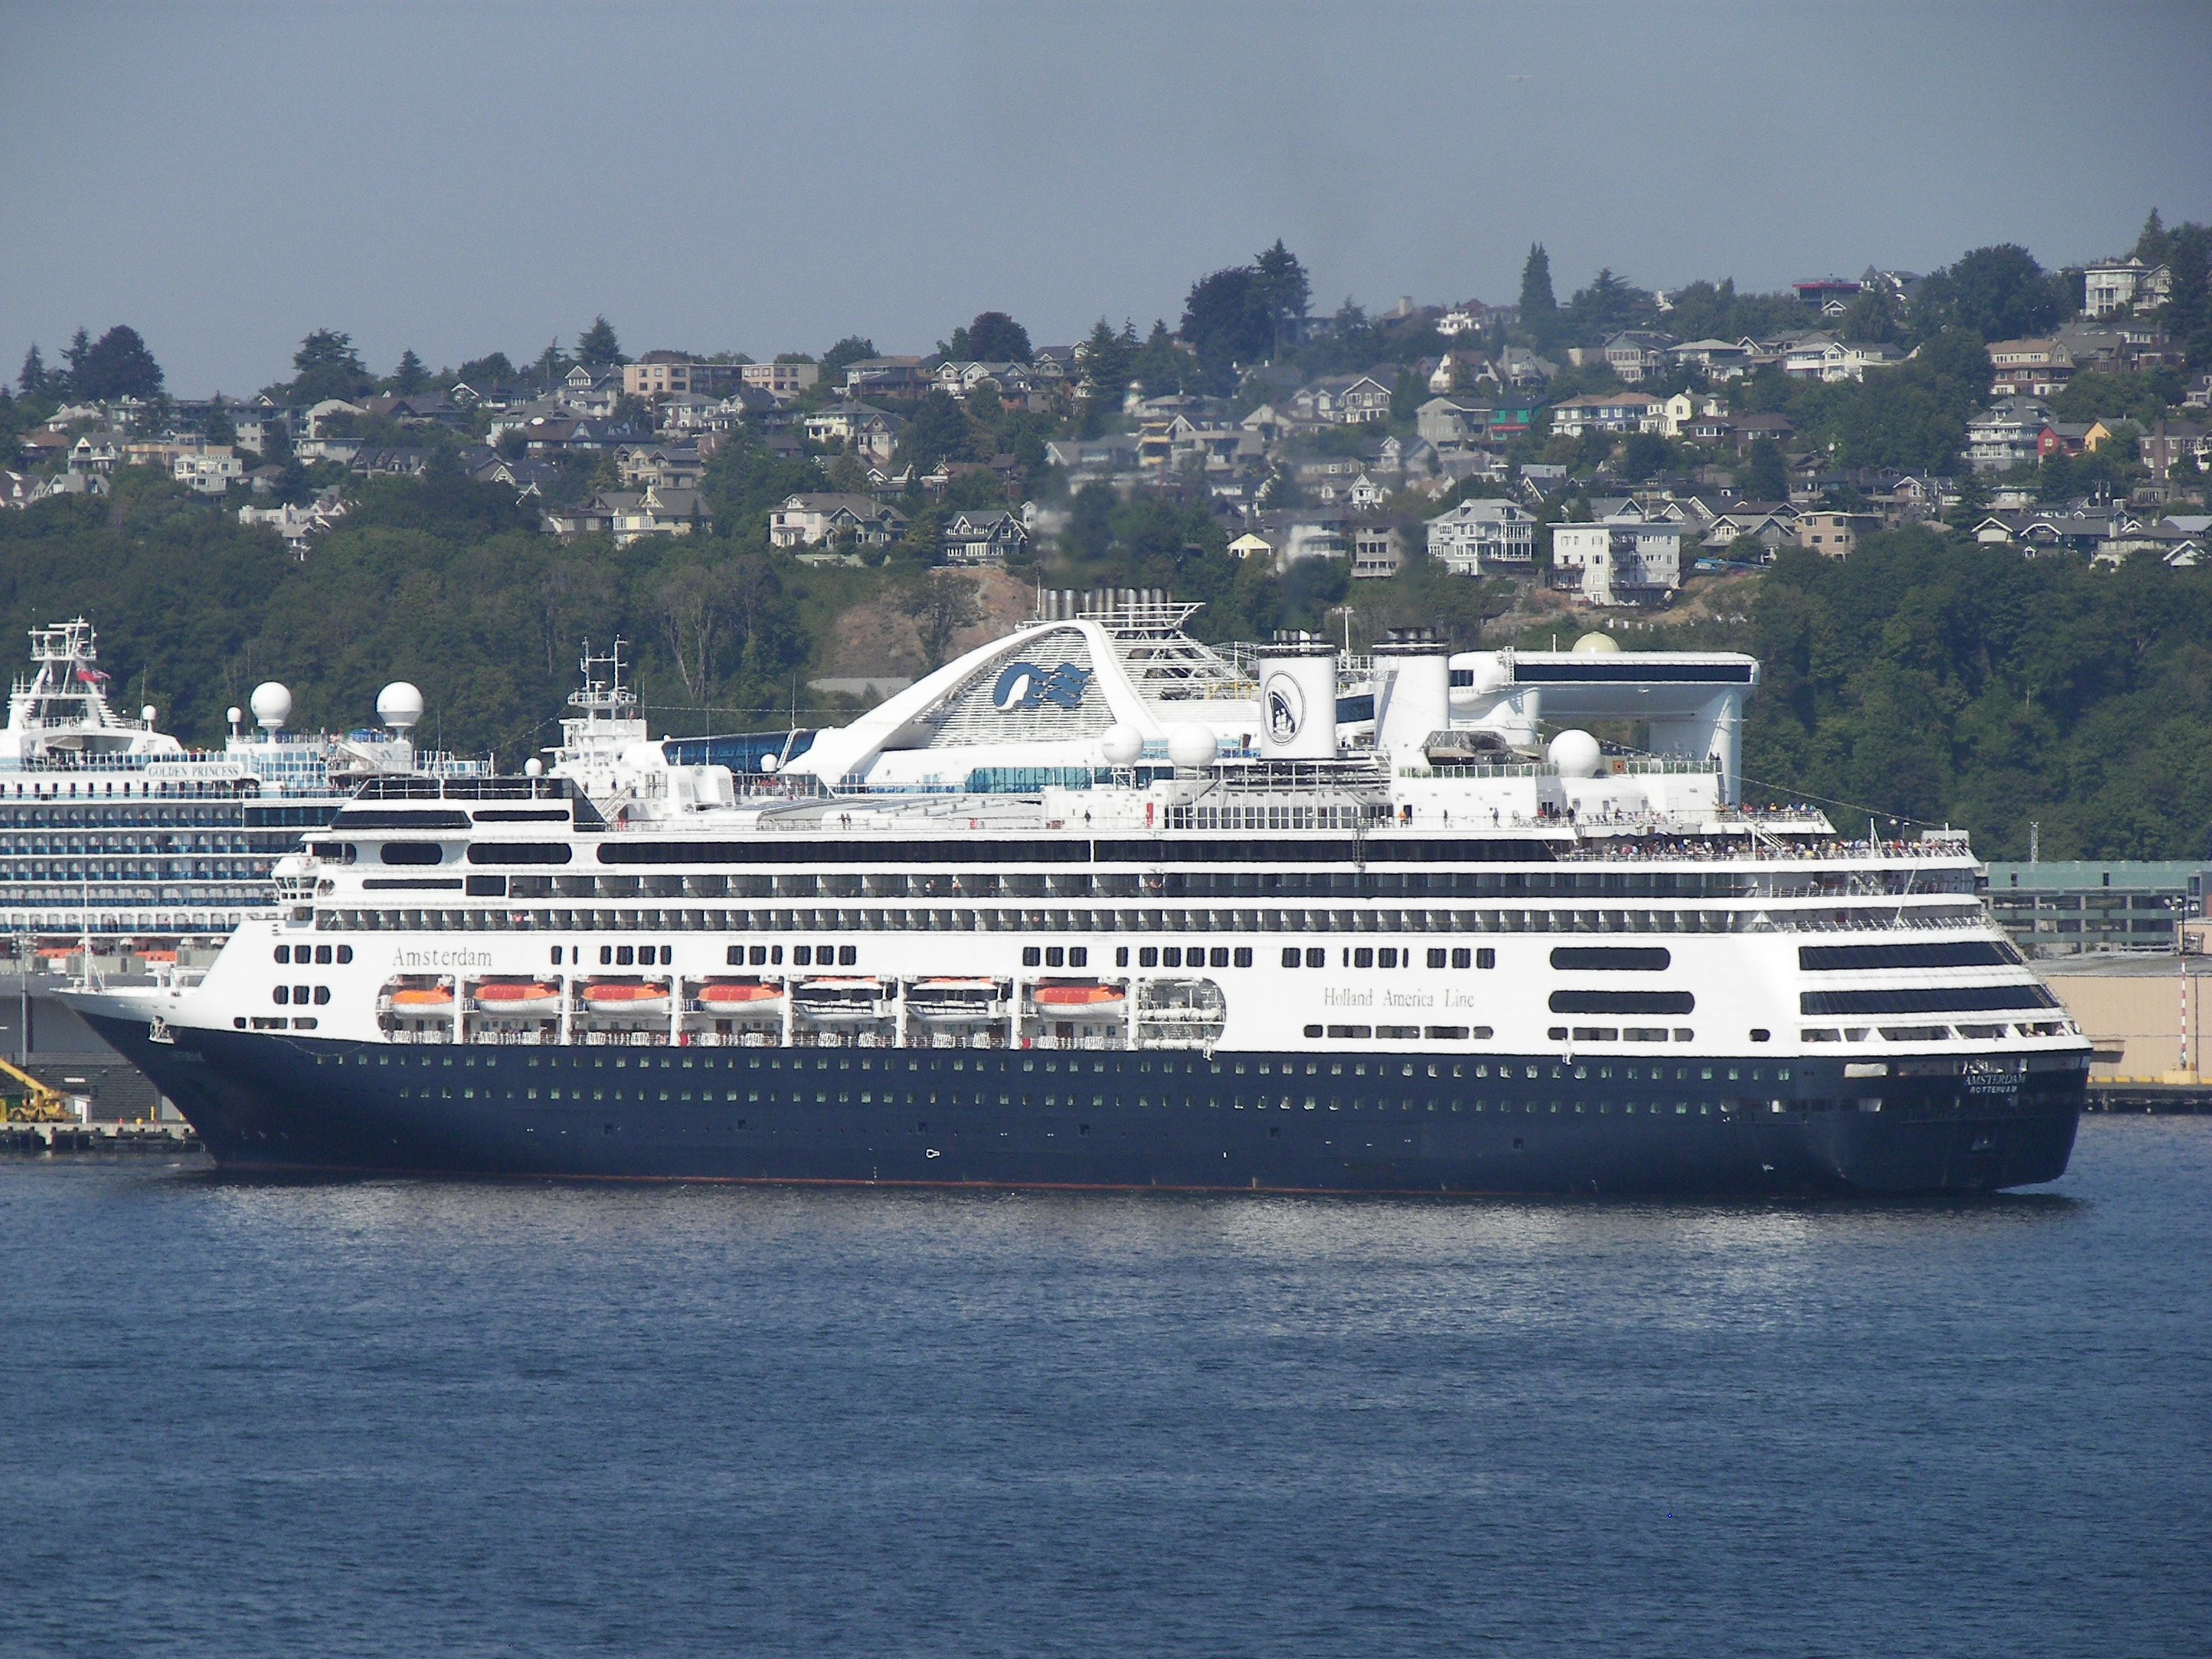 ms Amsterdam (With images) Holland america, Holland